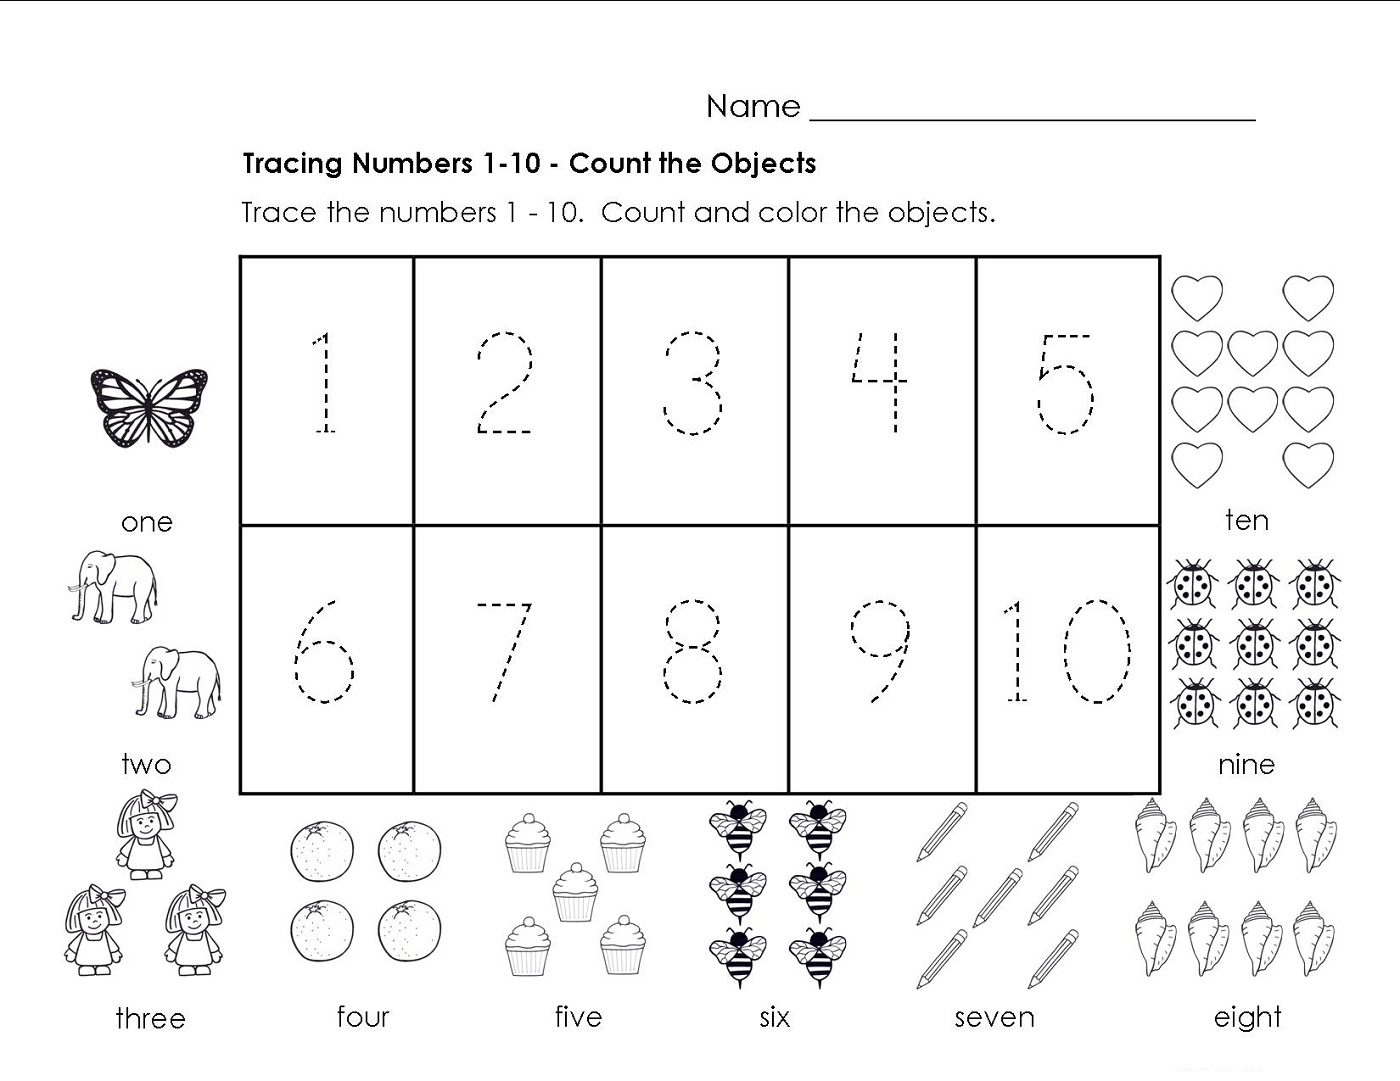 Traceable Numbers 1-10 Worksheets To Print | Activity Shelter - Printable Number Puzzles 1-10